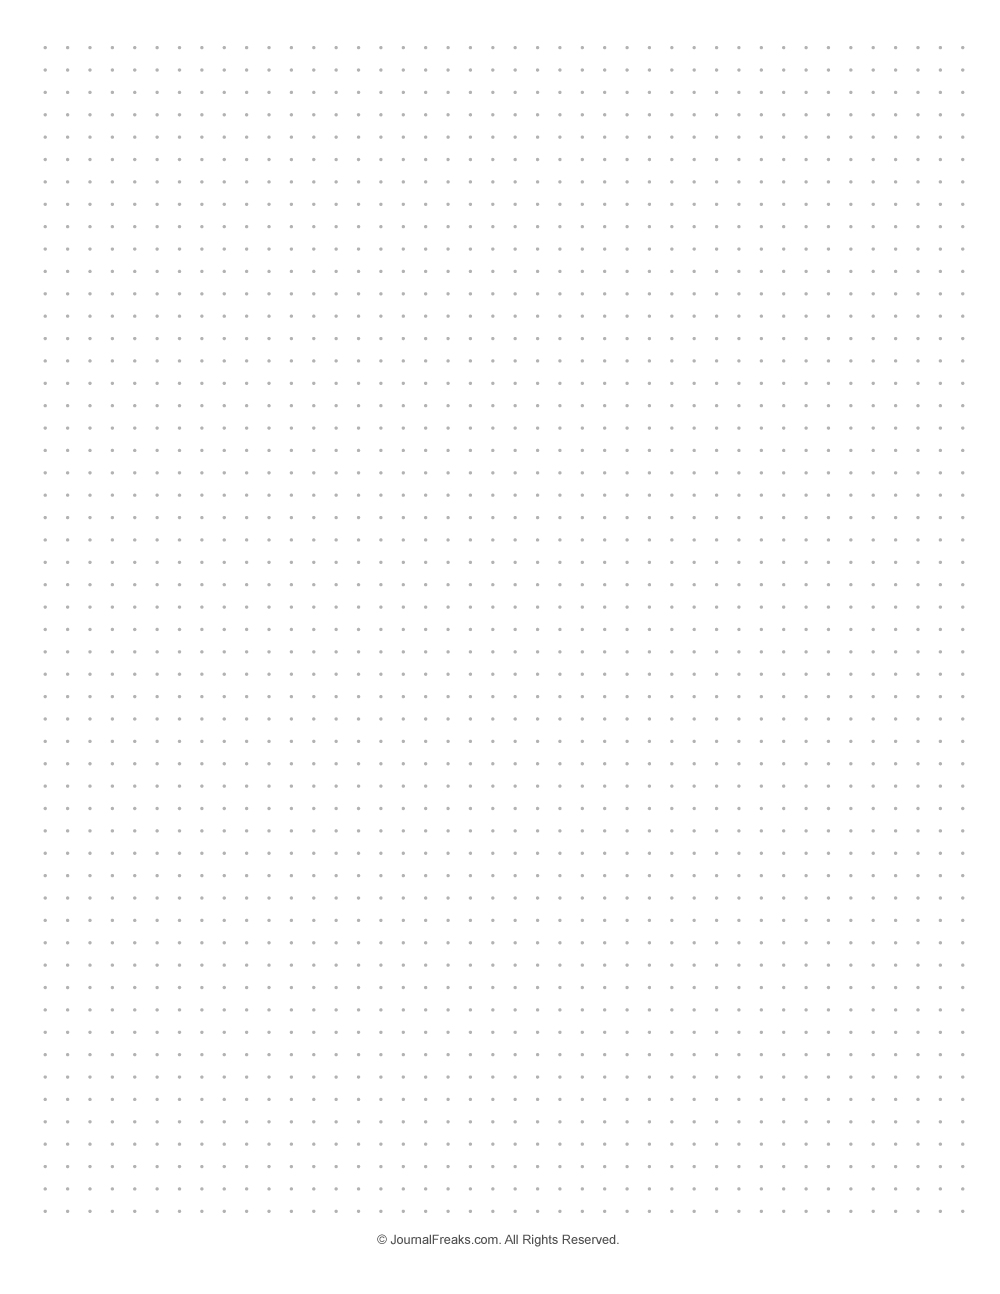 Simple Printable Dot Paper Page Bullet Journal Dot Grid Bullet Journal Paper Grid Paper Printable